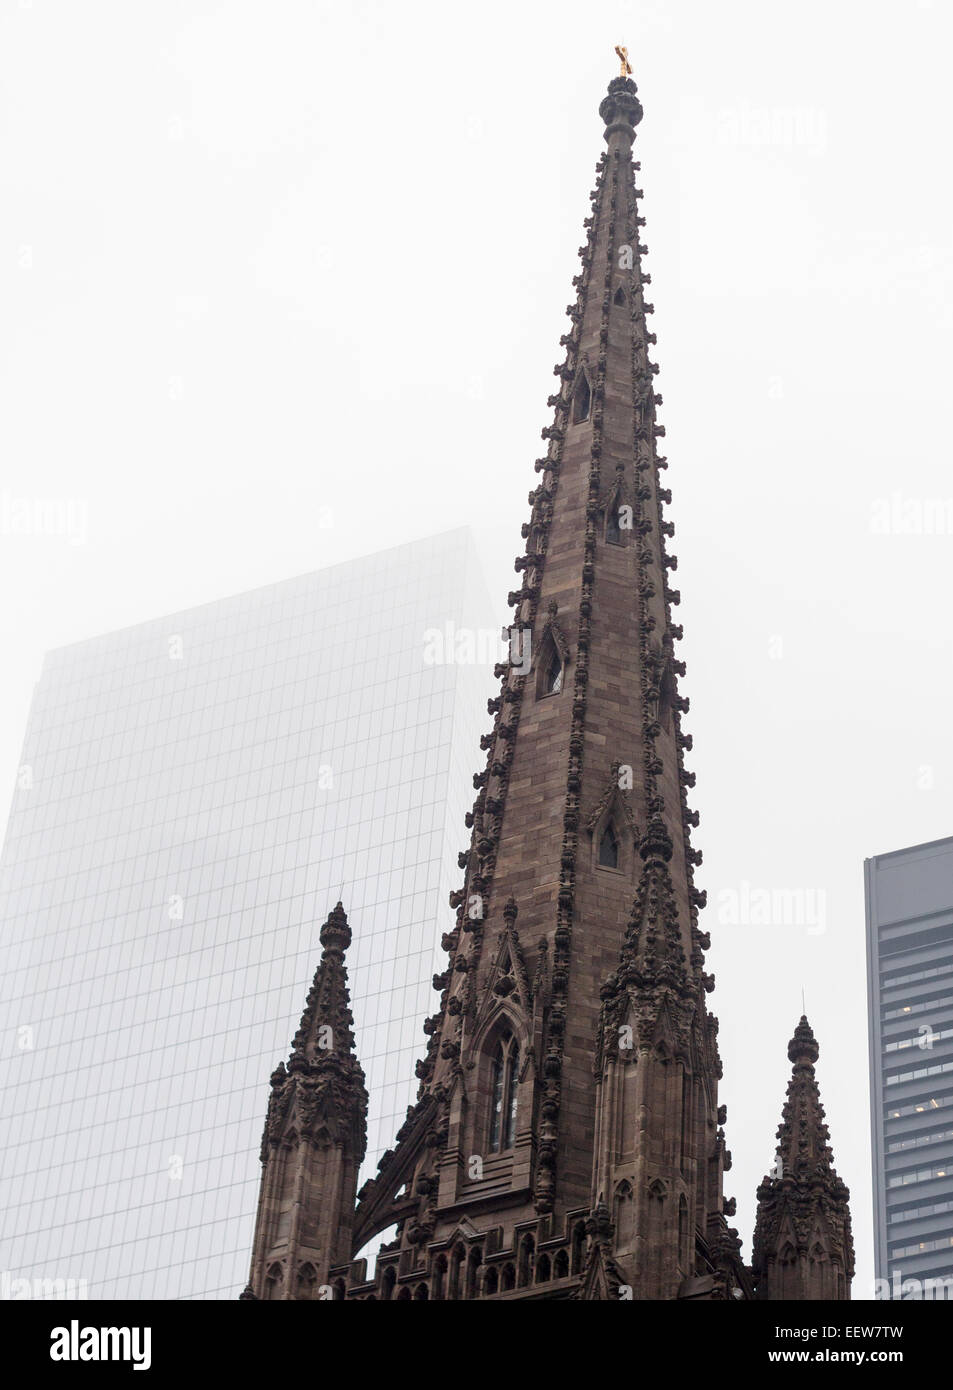 The Spire of Trinity Church in Lower Manhattan: a study in contrasts. The dark stone spire of Trinity topped with - Stock Image